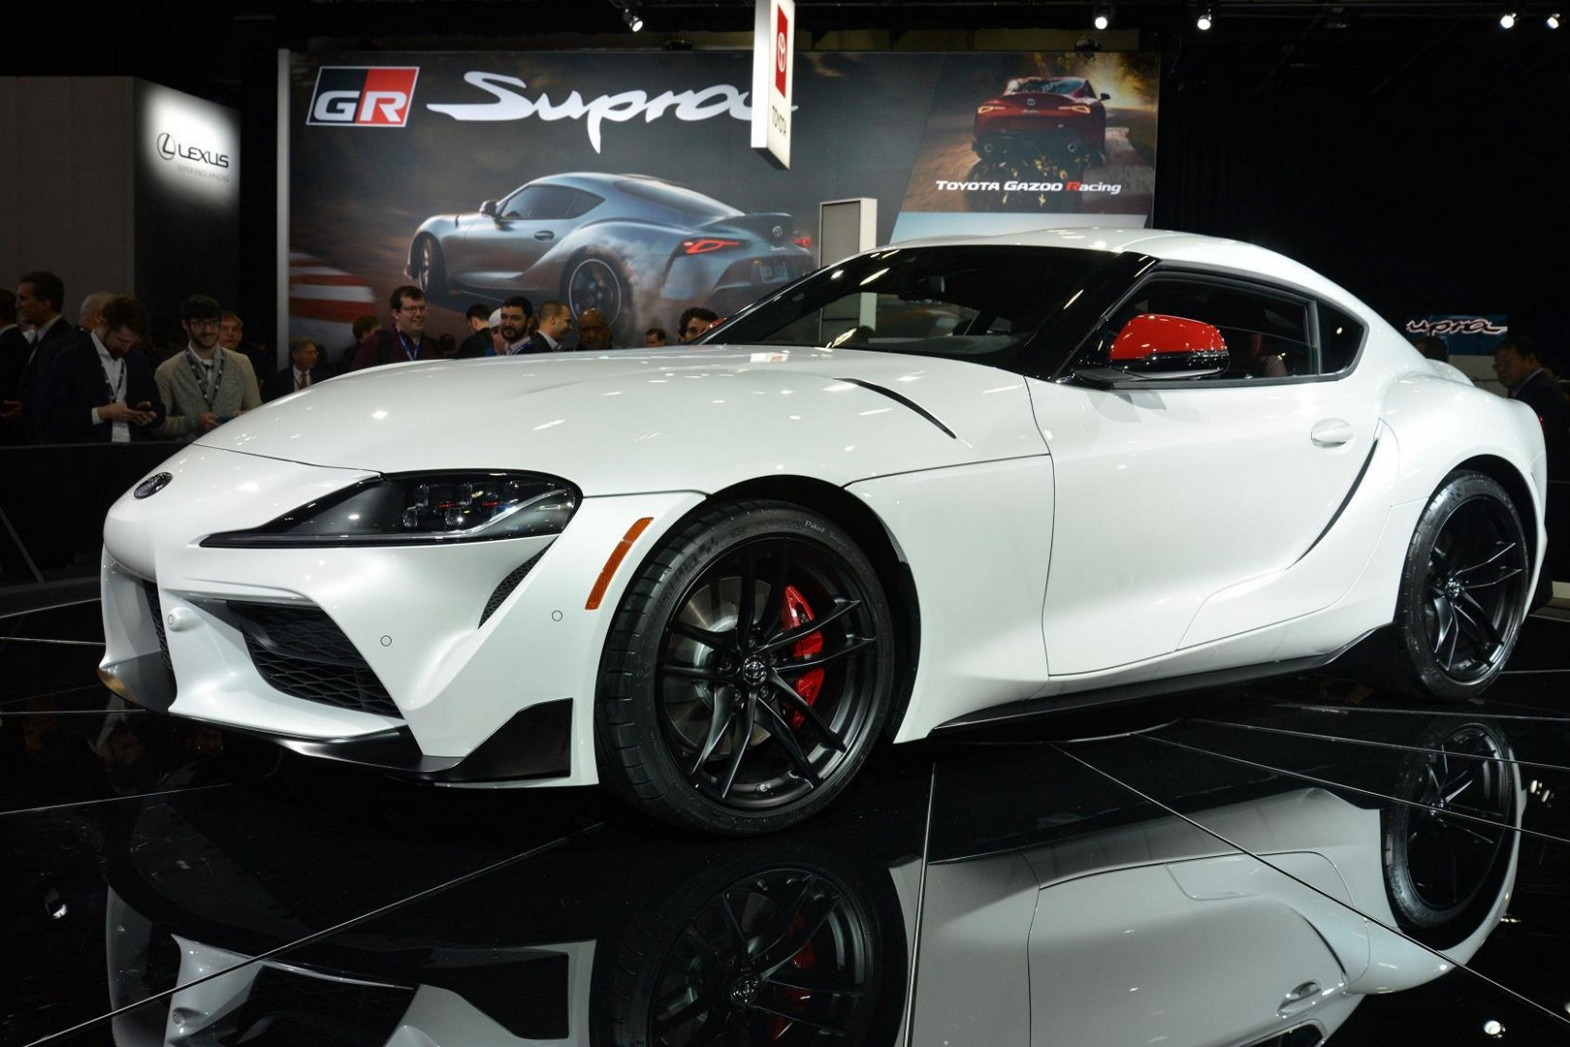 Japan-spec Toyota Supra Gets 8 and 8 HP from 8-Liter Turbo ..